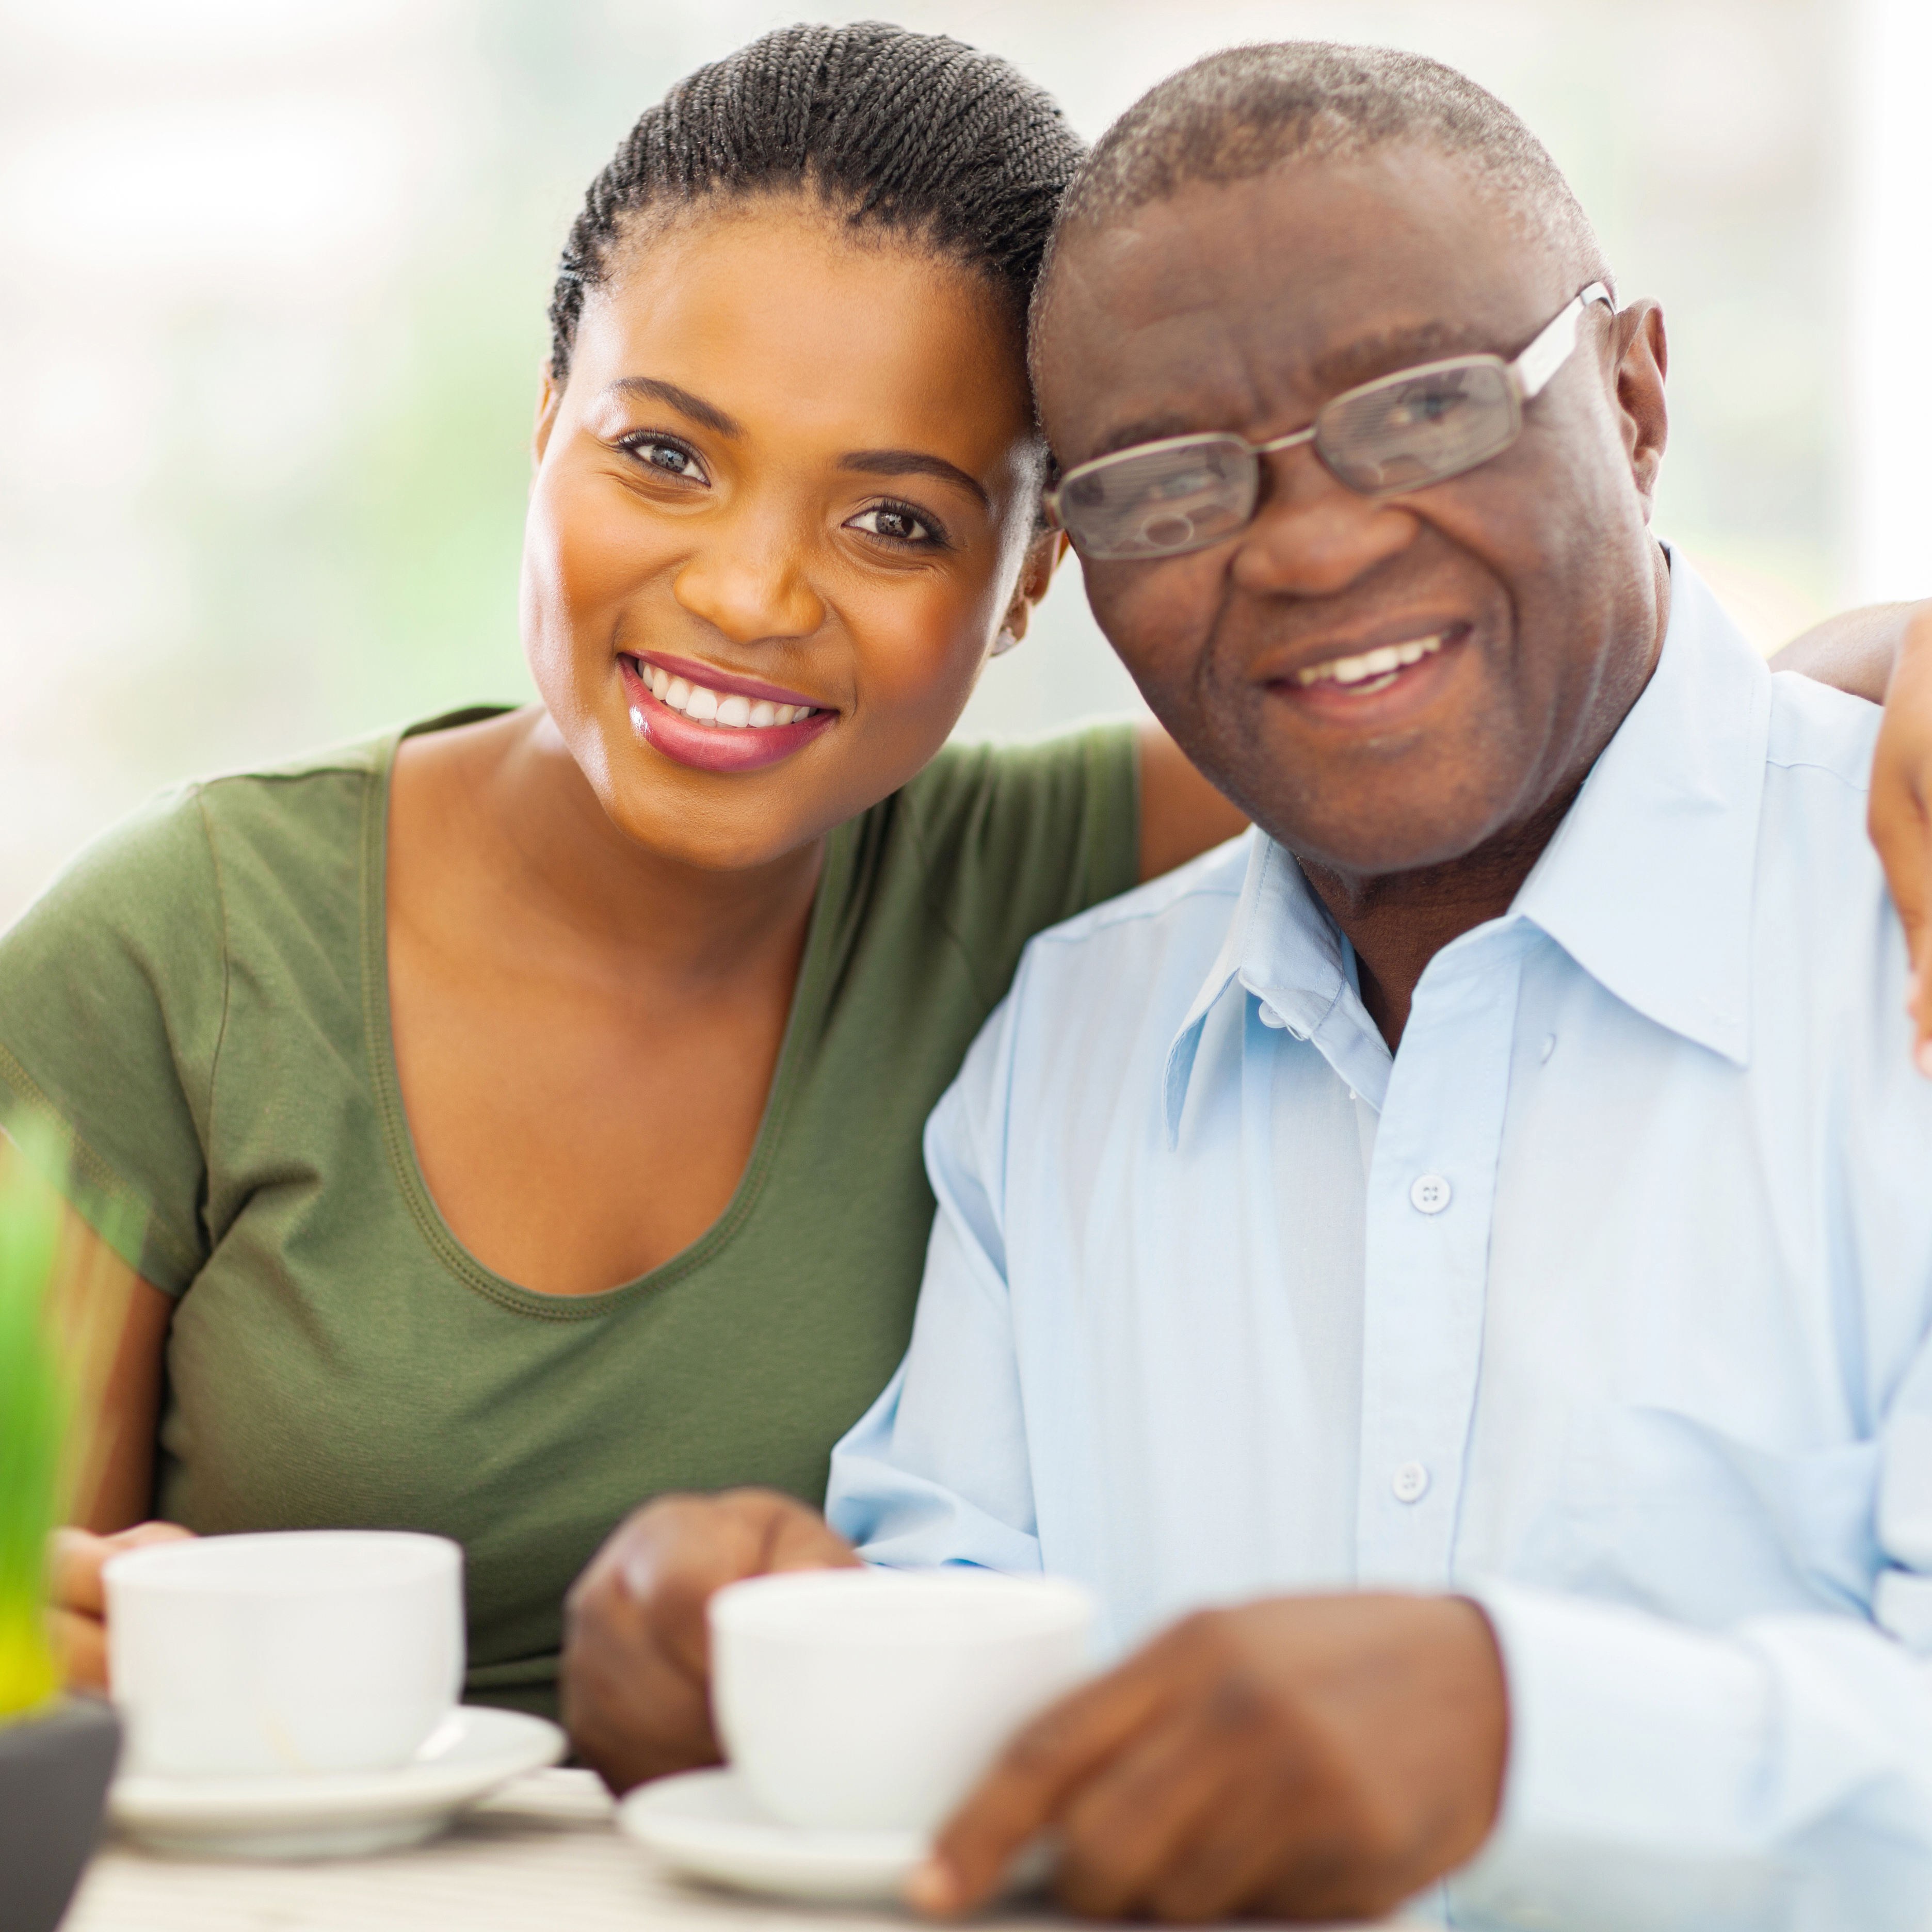 a smiling elderly father and his adult daughter, with cups of tea or coffee